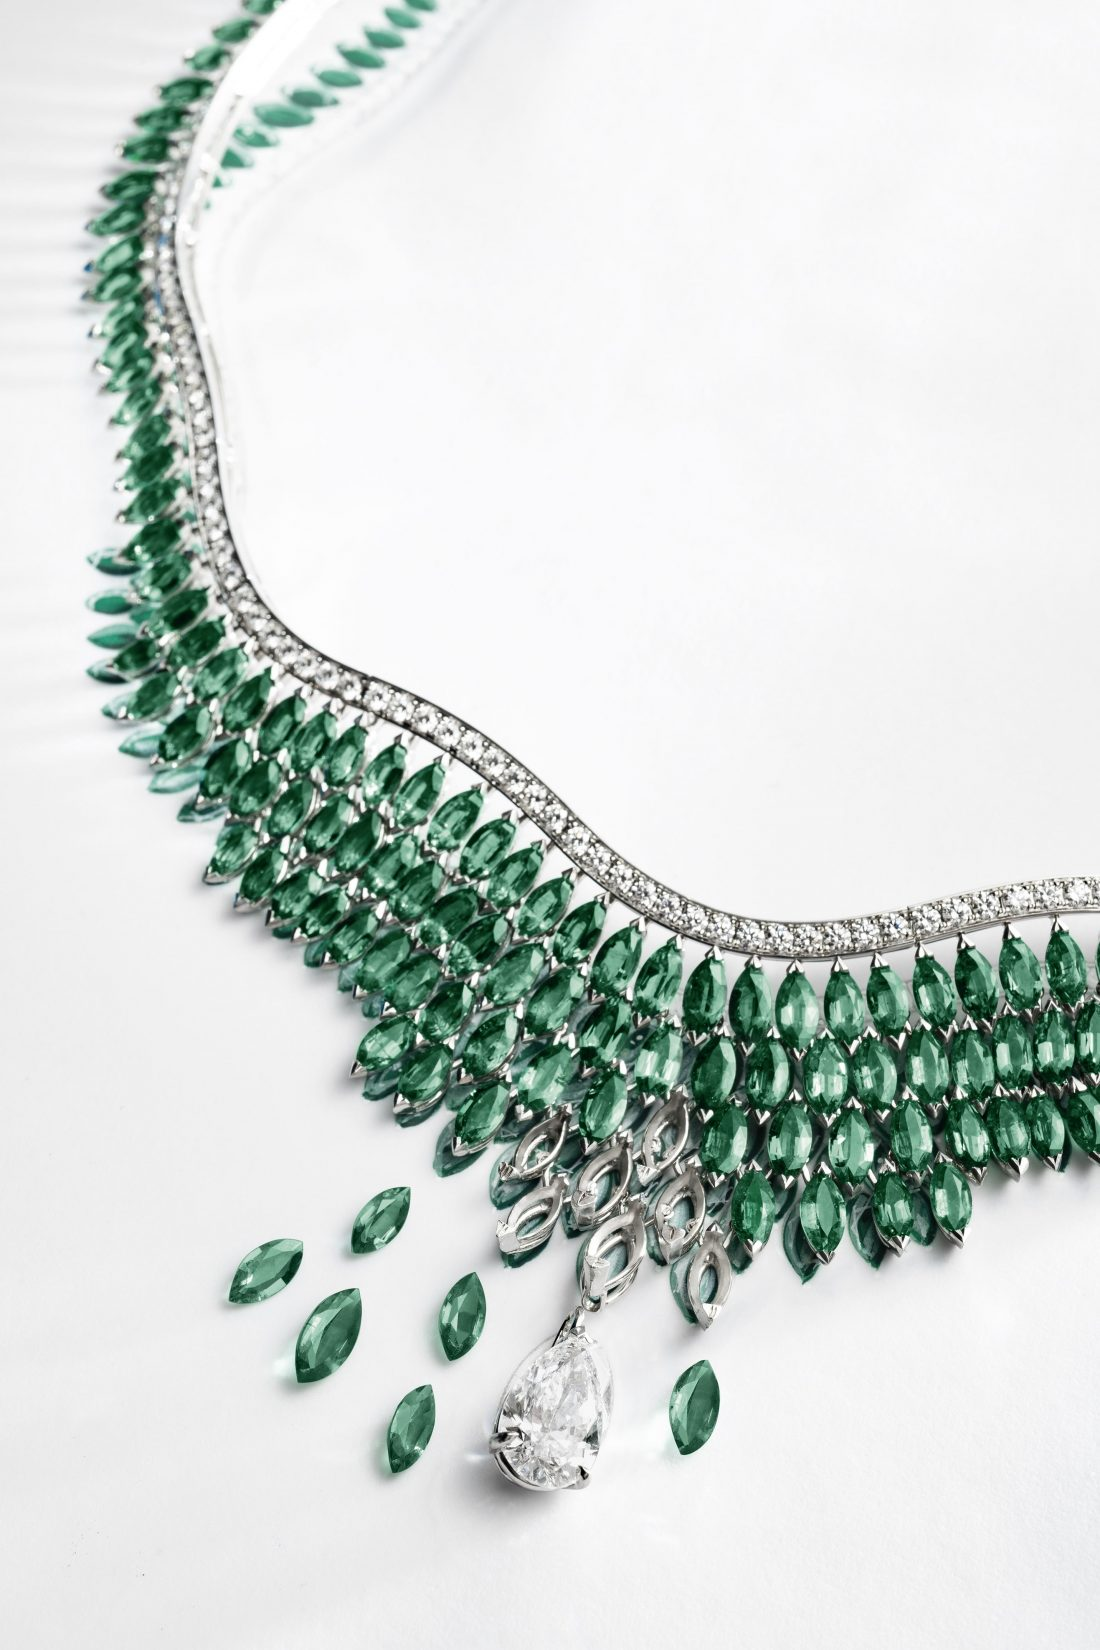 Luxuriant Oasis transformable necklace